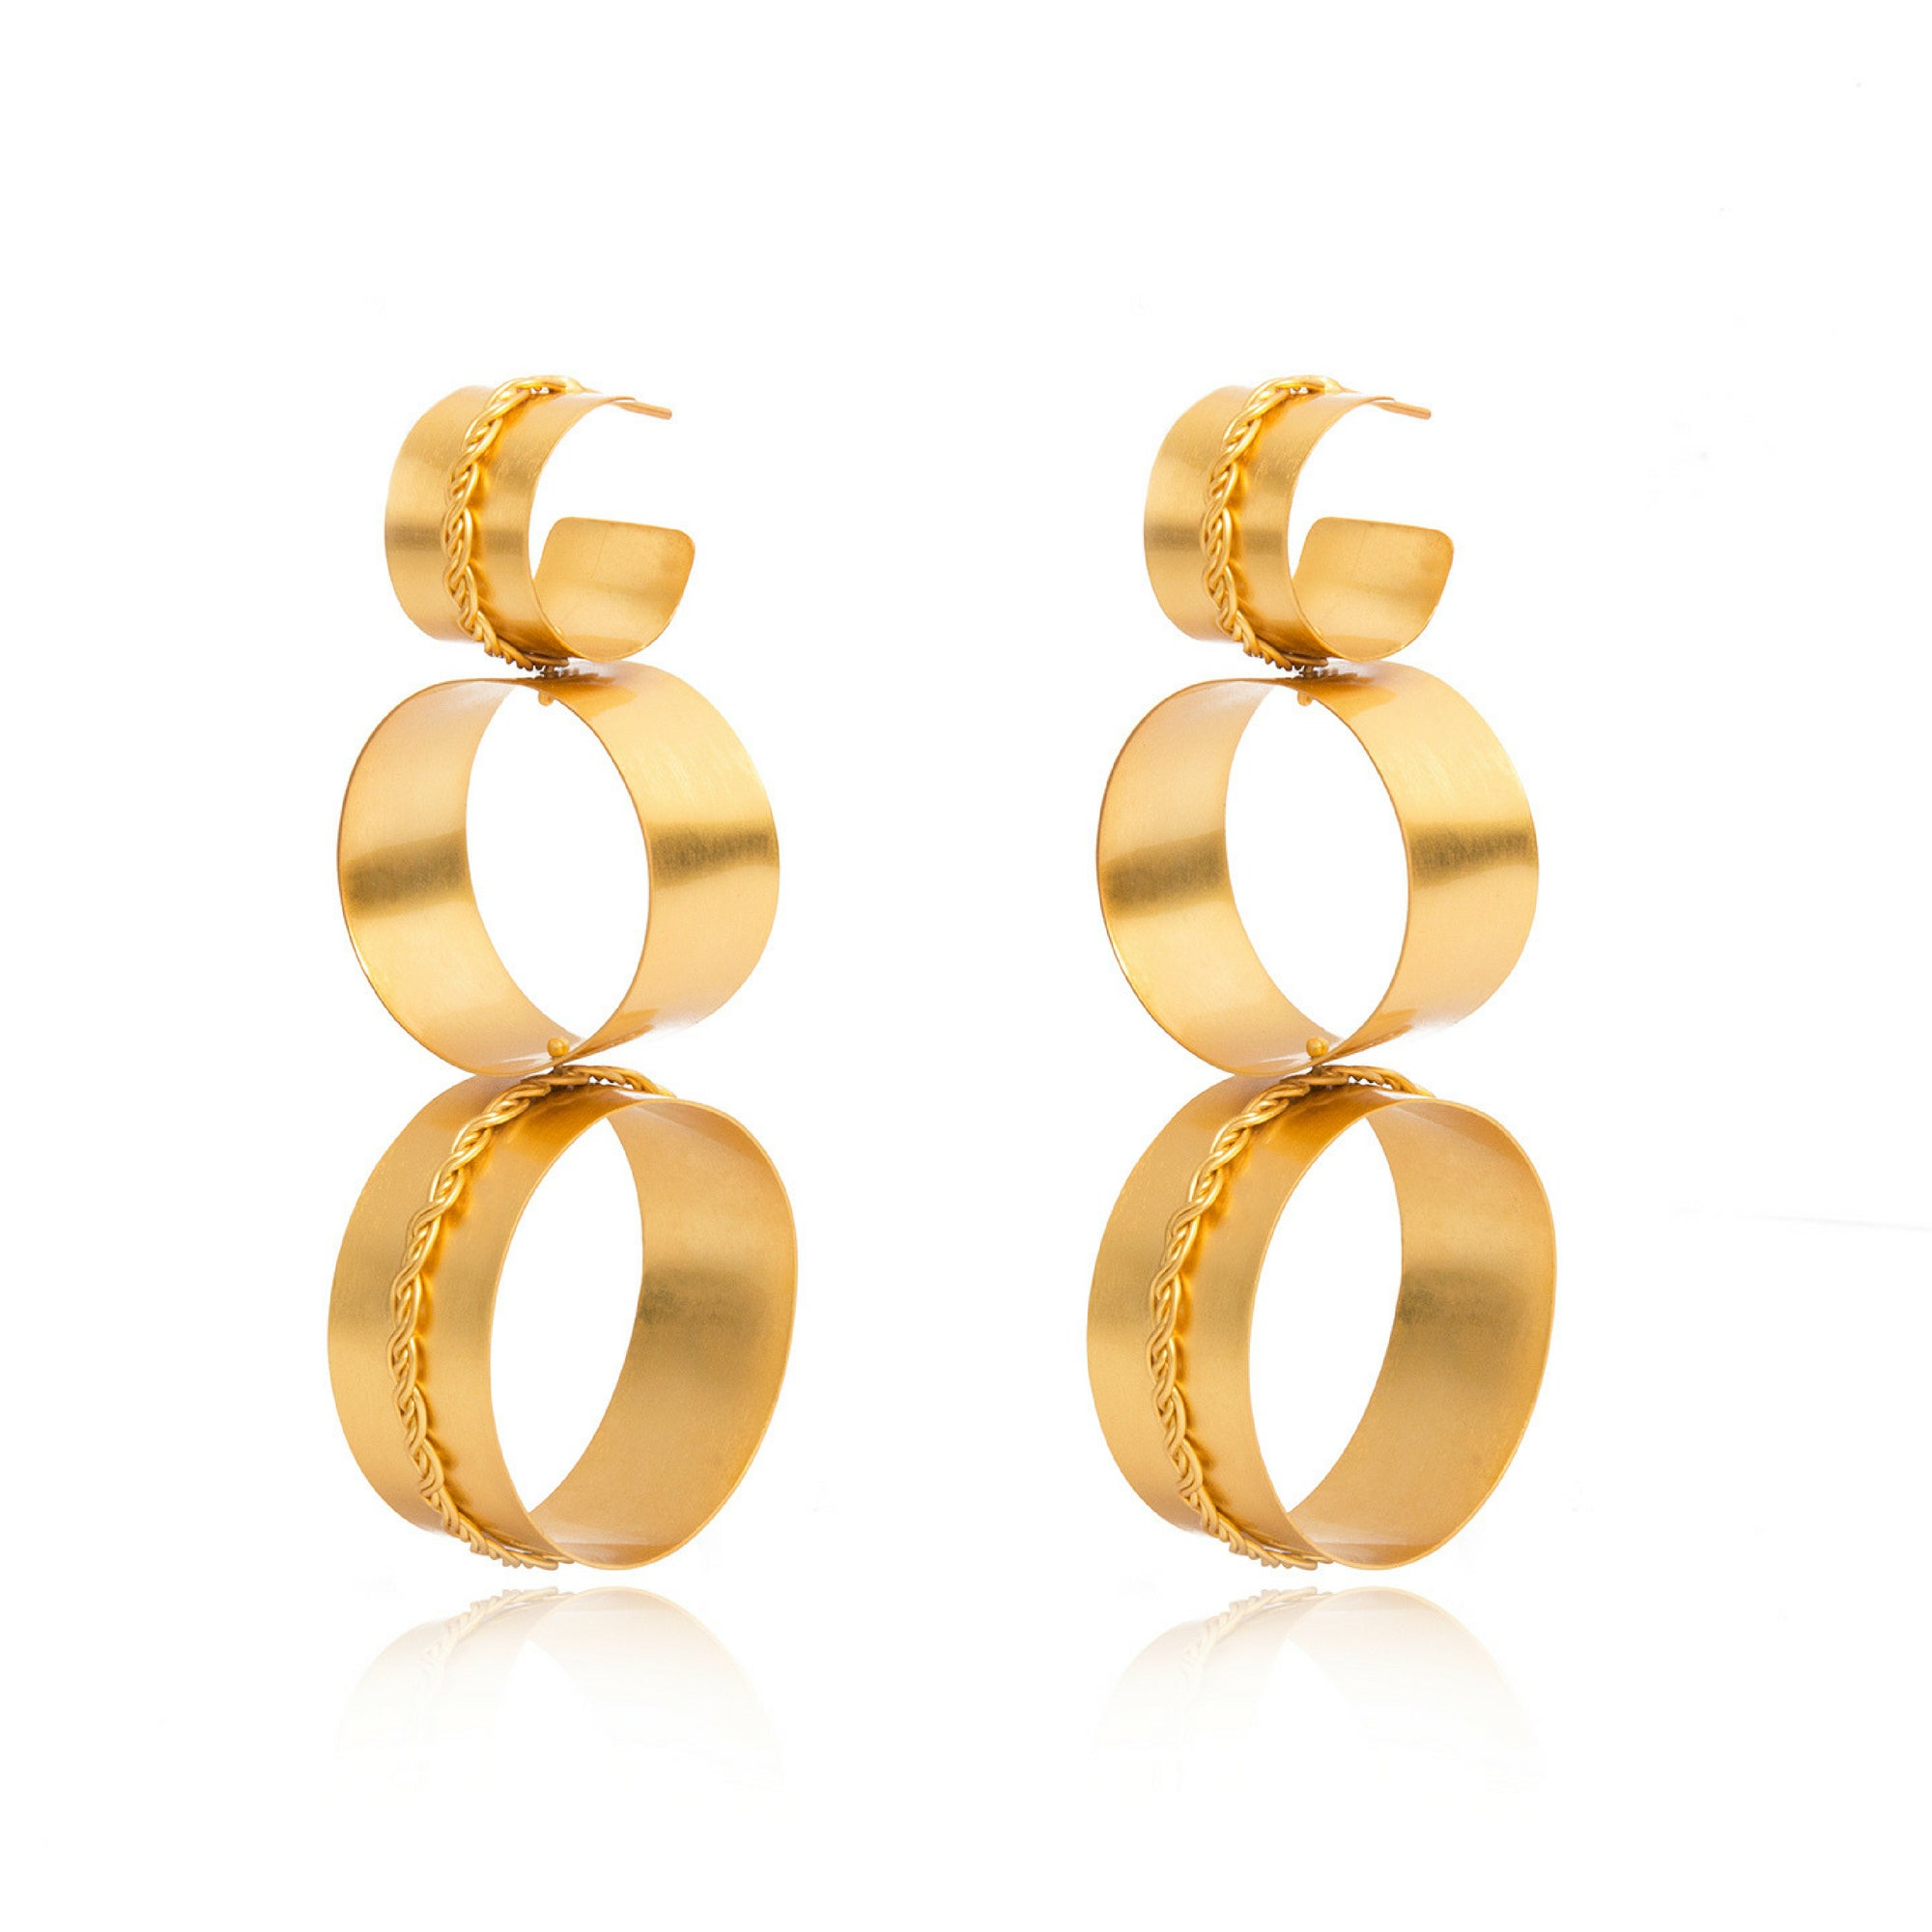 Liza Echeverry Jewelry Colombia Connection Earrings Gold